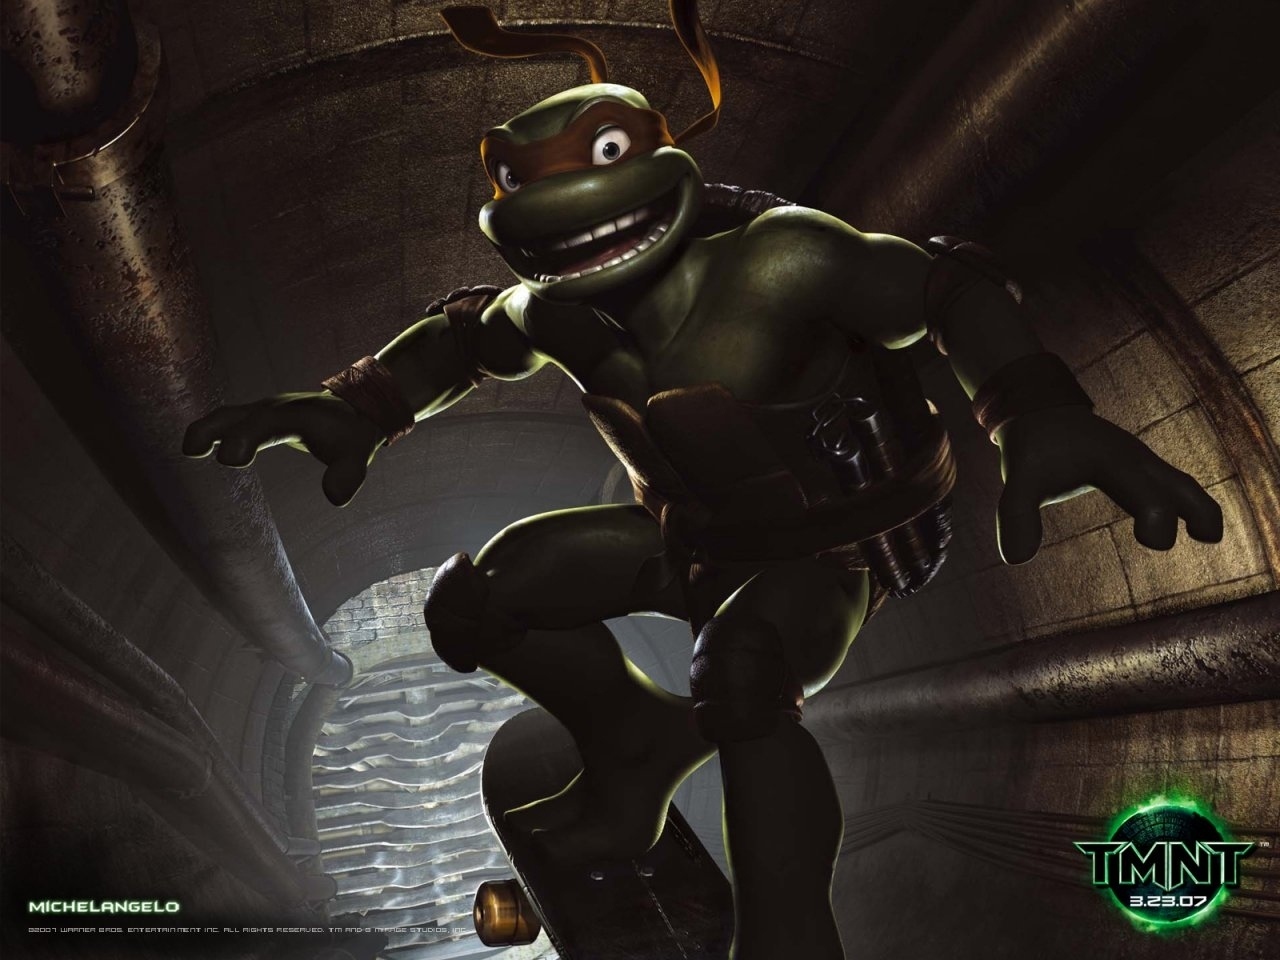 6830 download wallpaper Cartoon, Cinema, Tmnt screensavers and pictures for free